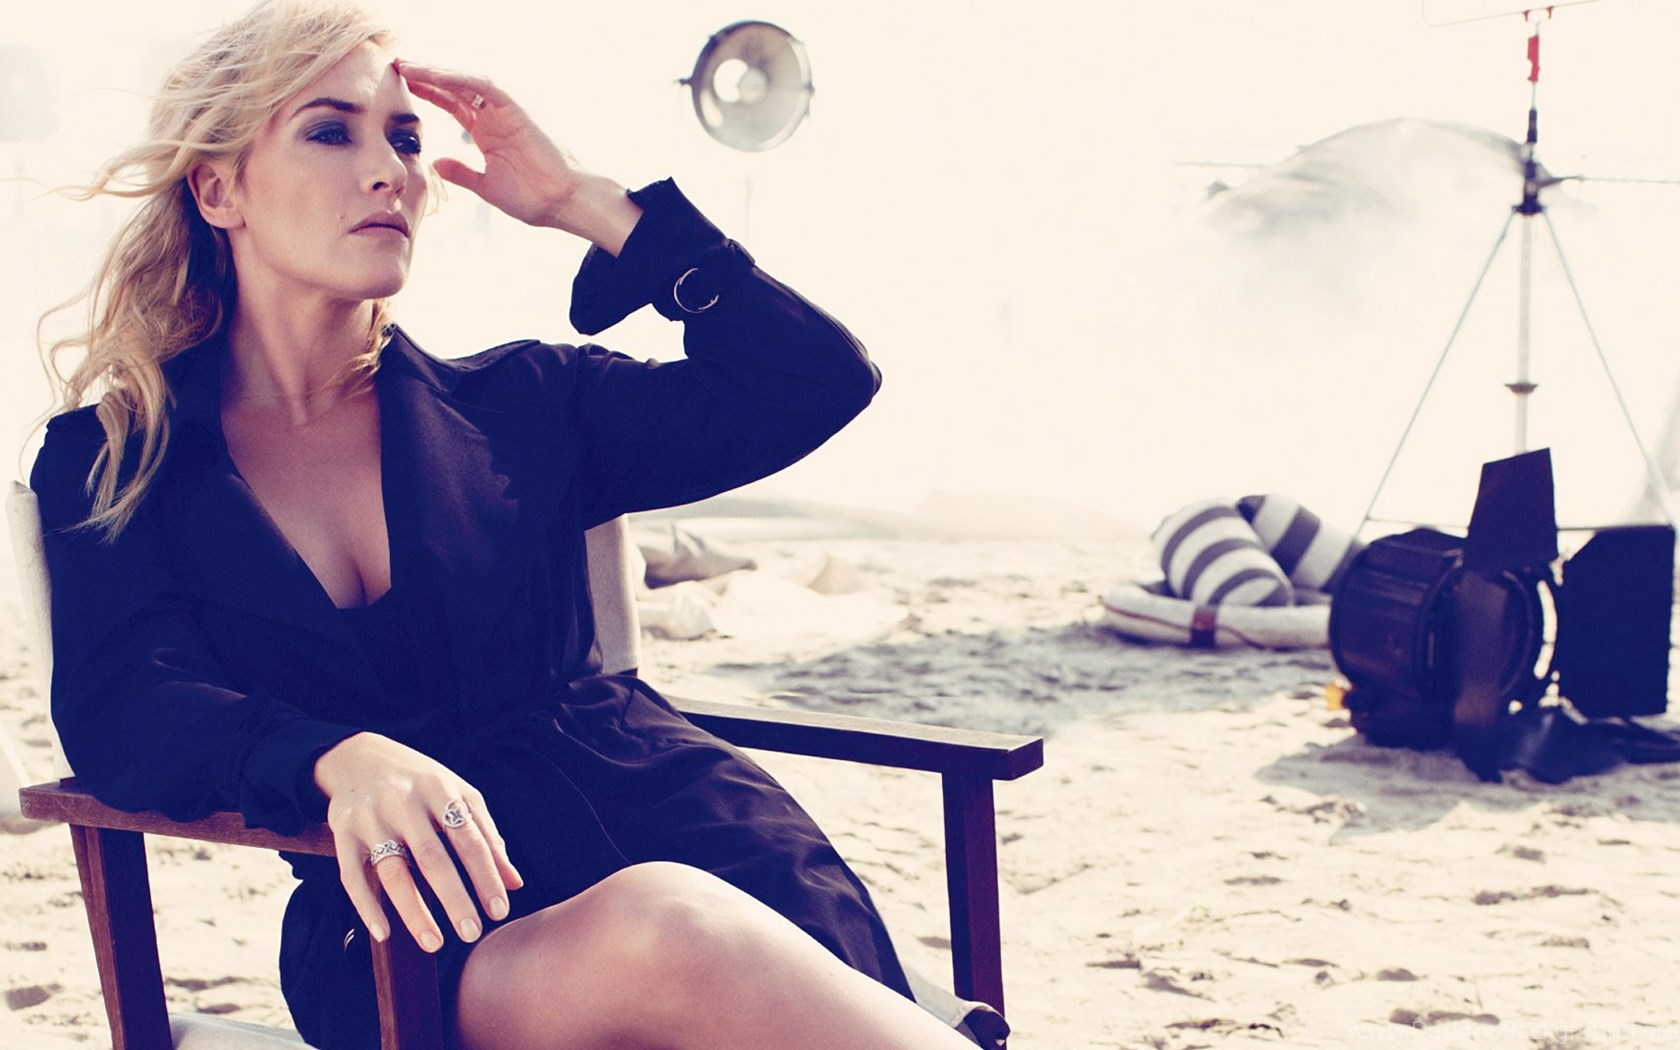 Hd Kate Winslet Wallpapers Hdcoolwallpaperscom Desktop Background